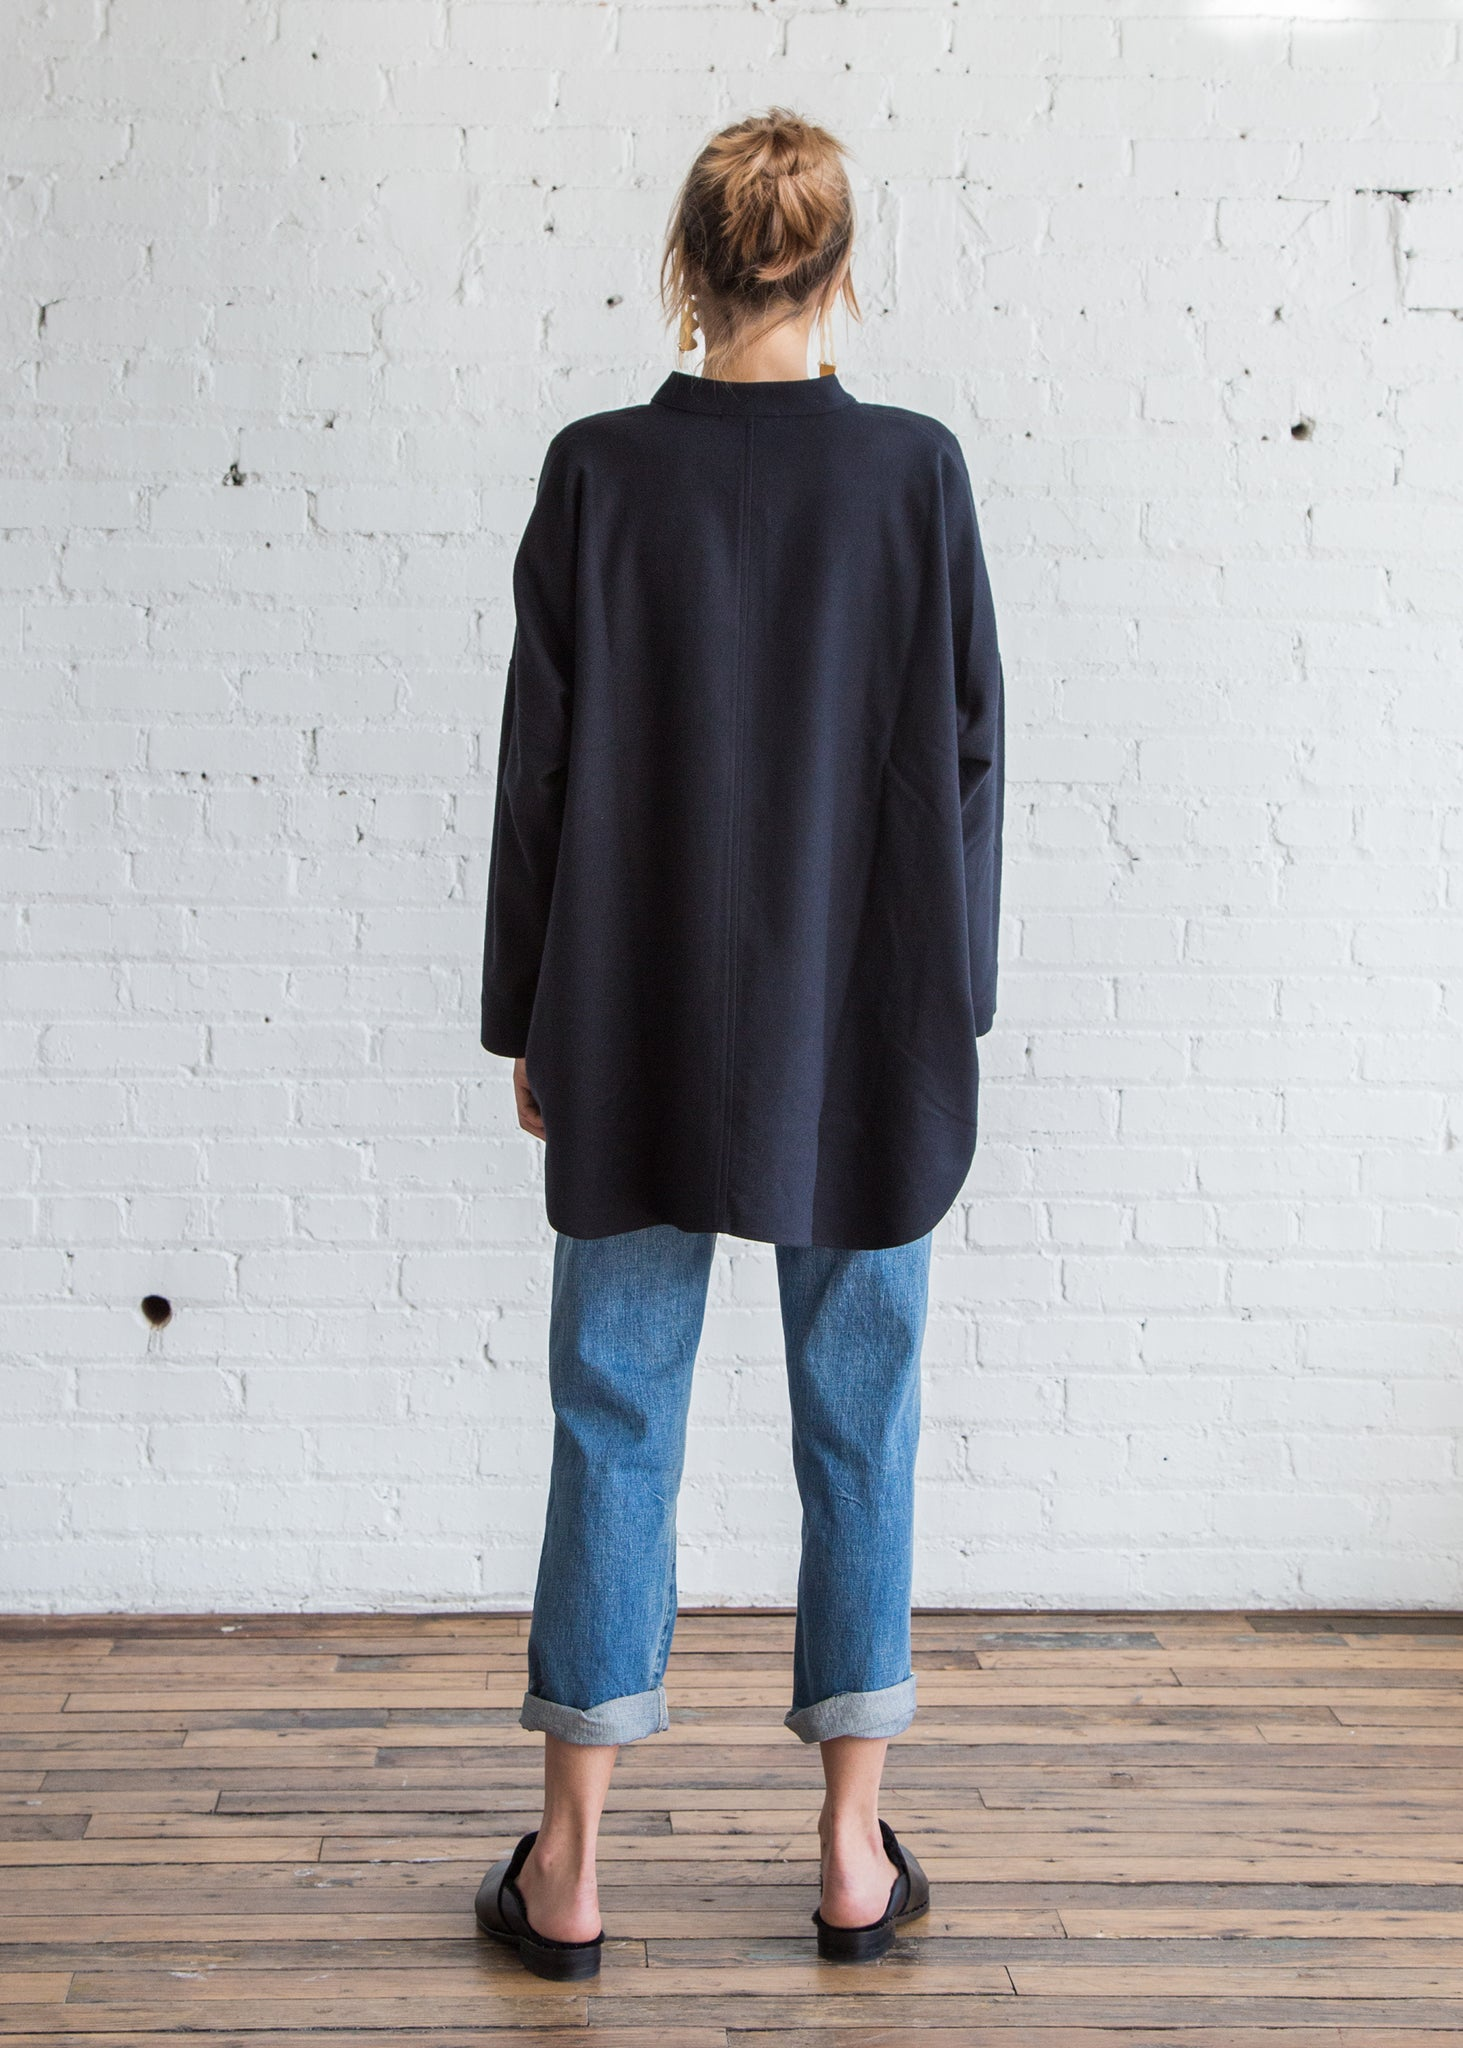 Black Crane Square Shirts Navy Cotton